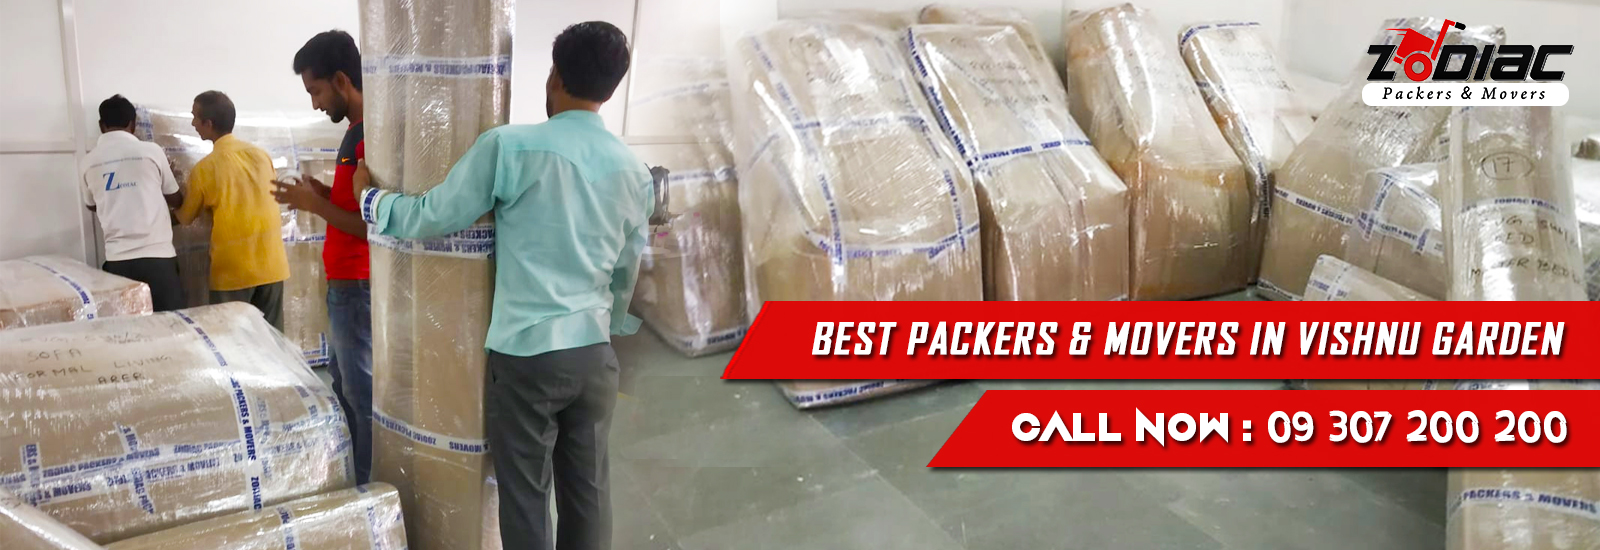 Packers and Movers in Vishnu Garden